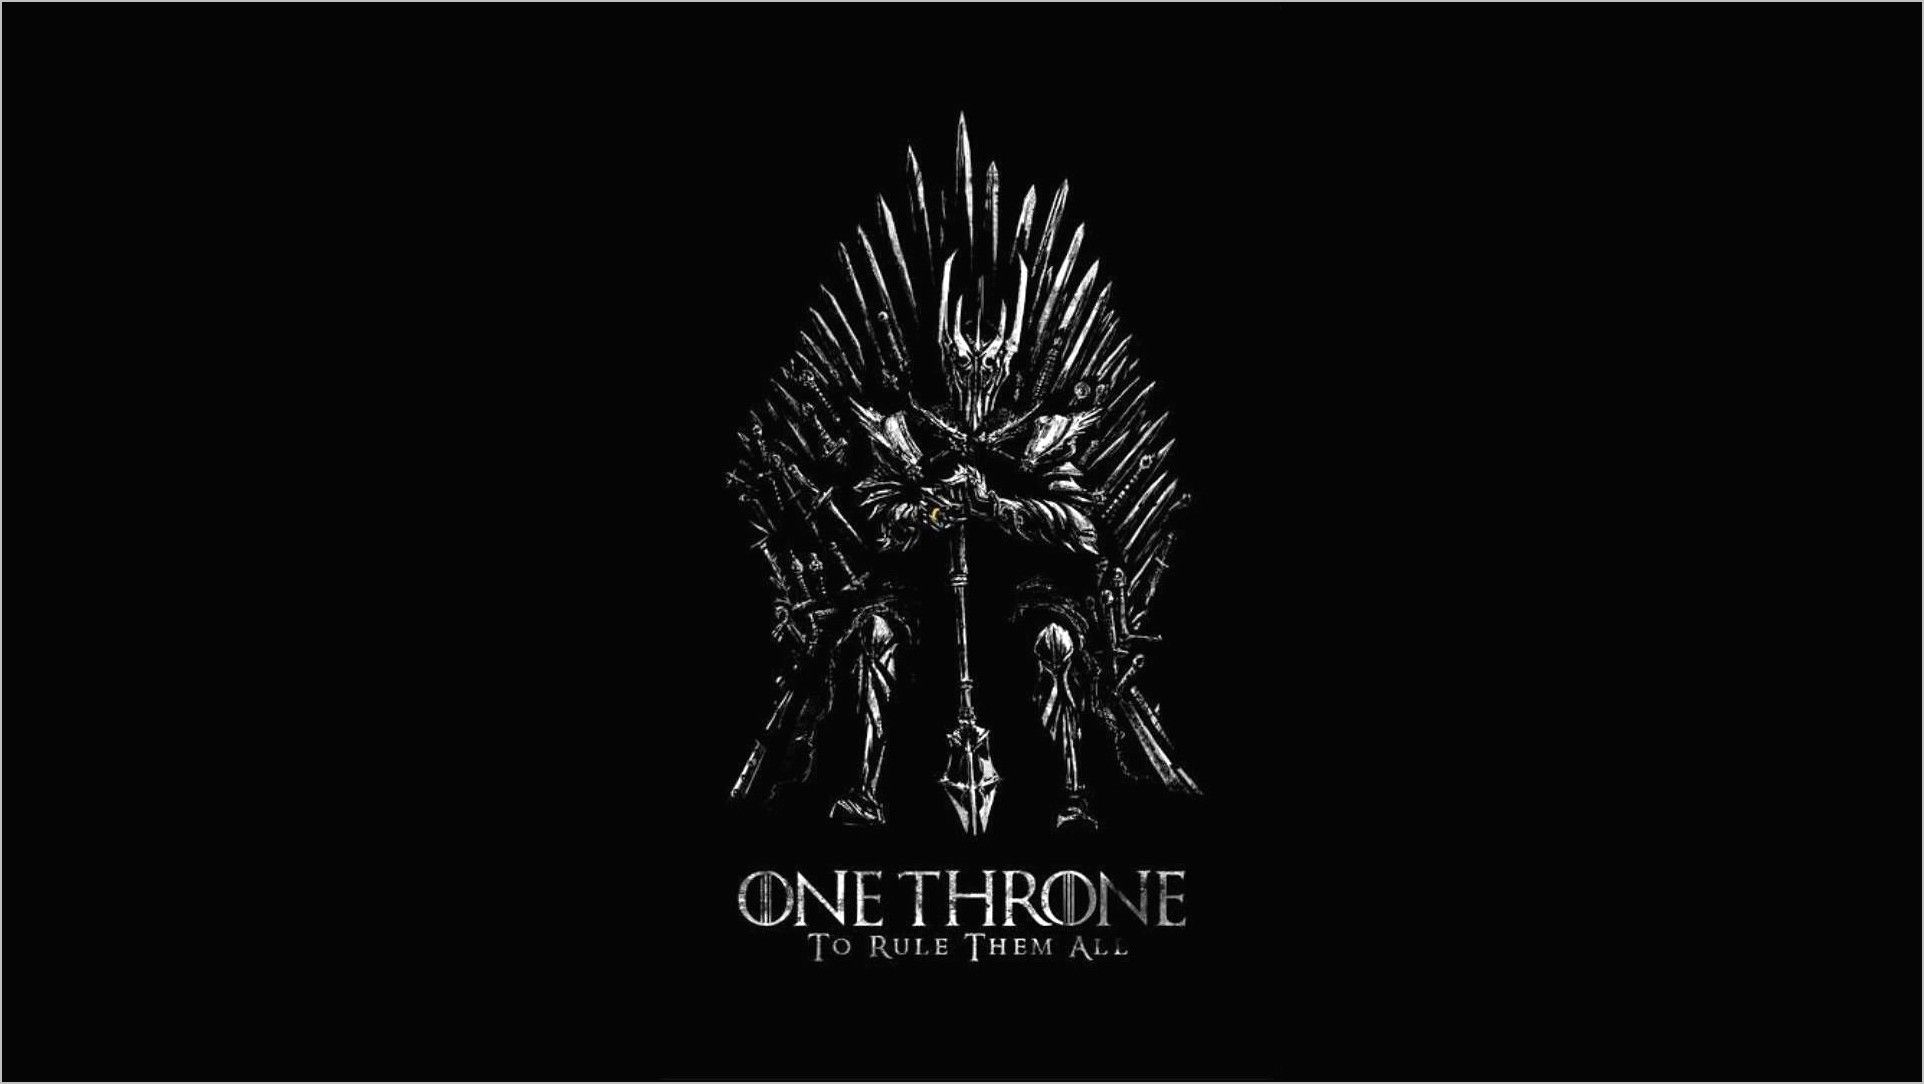 Wallpaper 4k Cell Game In 2020 Iron Throne Game Of Thrones 1080p Wallpaper Pc